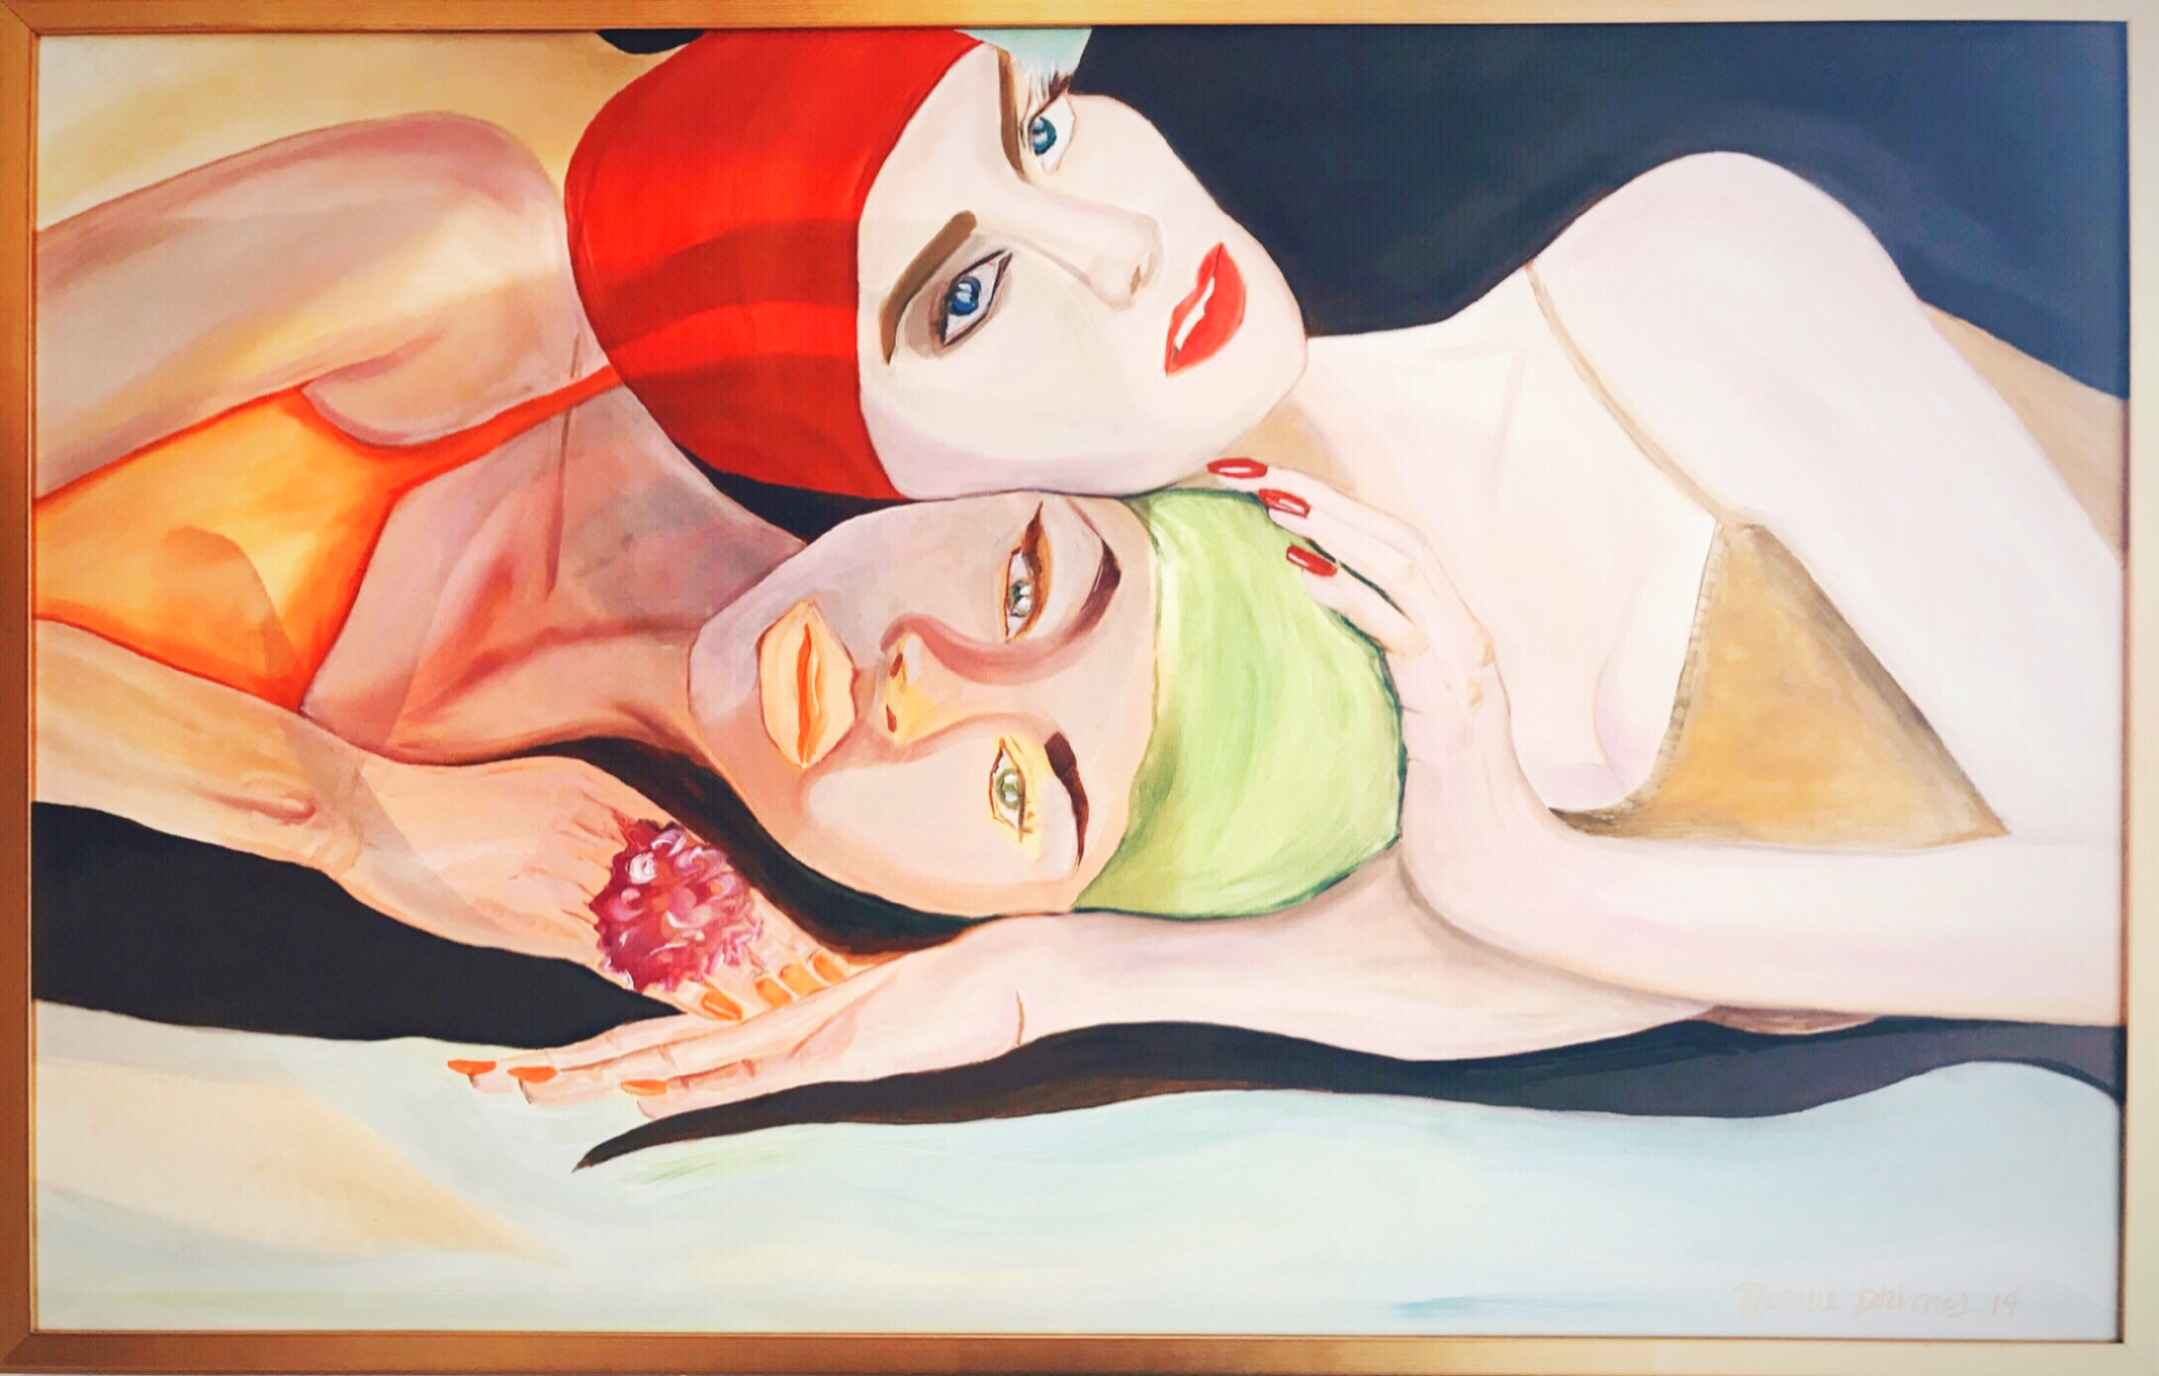 Swimmers by  Nicolle Dhimes - Masterpiece Online